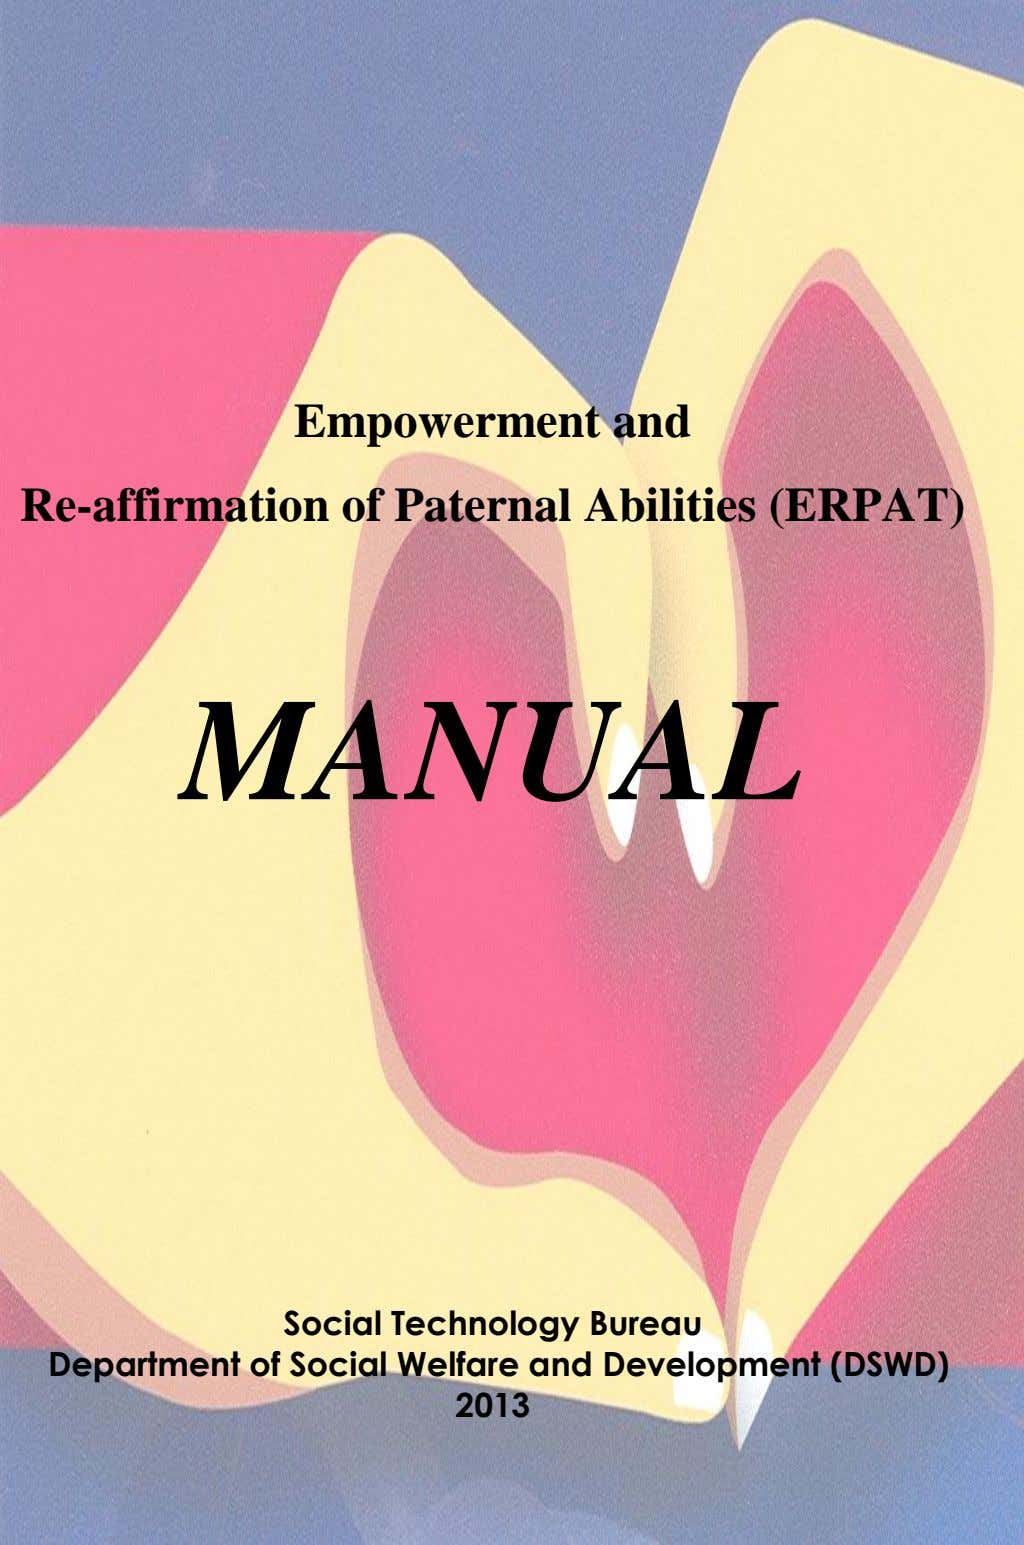 Empowerment and Re-affirmation of Paternal Abilities (ERPAT) MANUAL Social Technology Bureau Department of Social